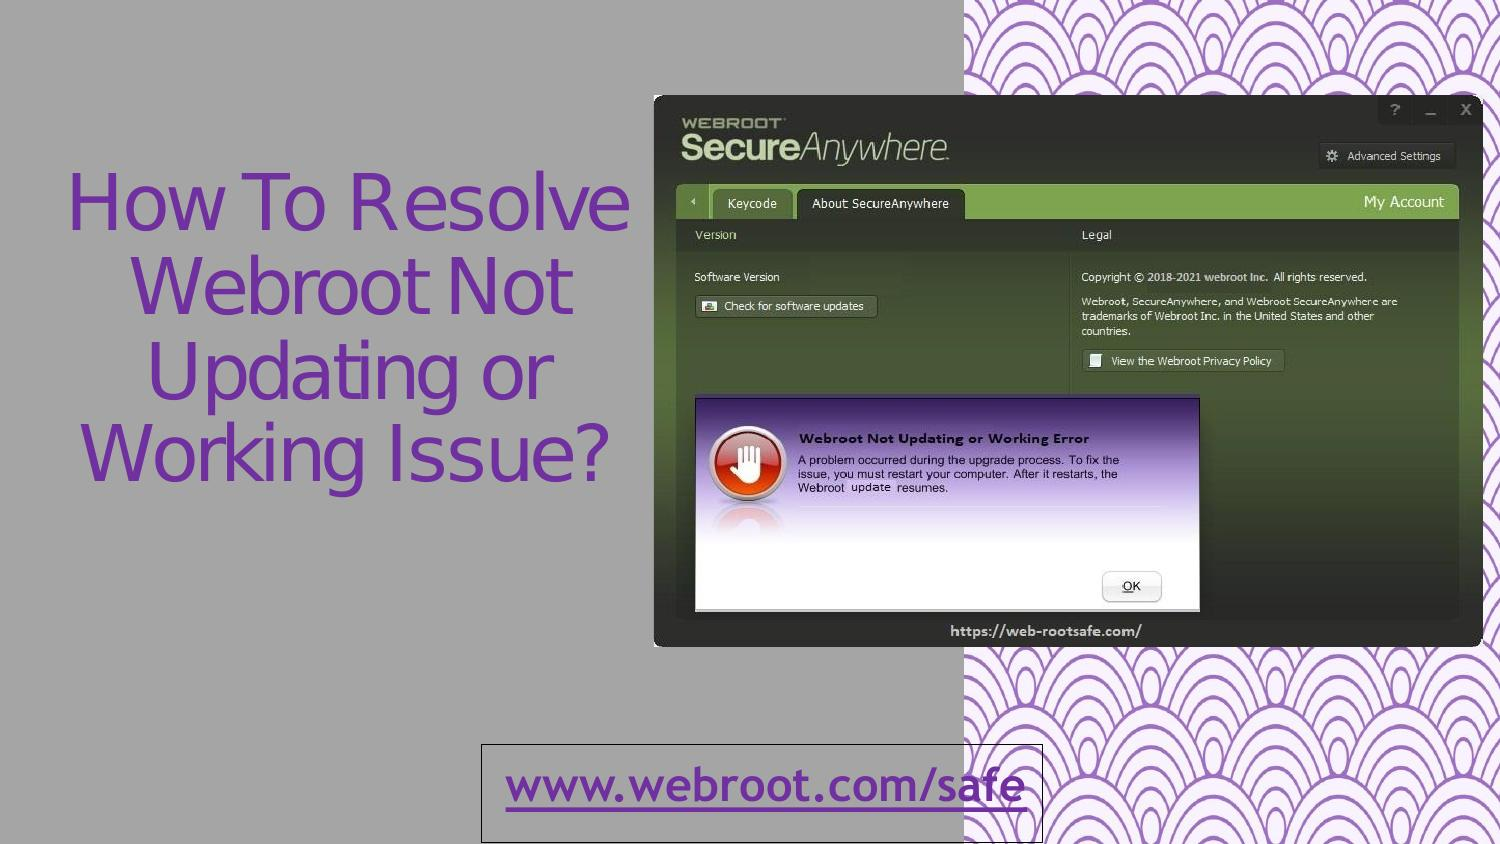 Webroot not updating rules in dating